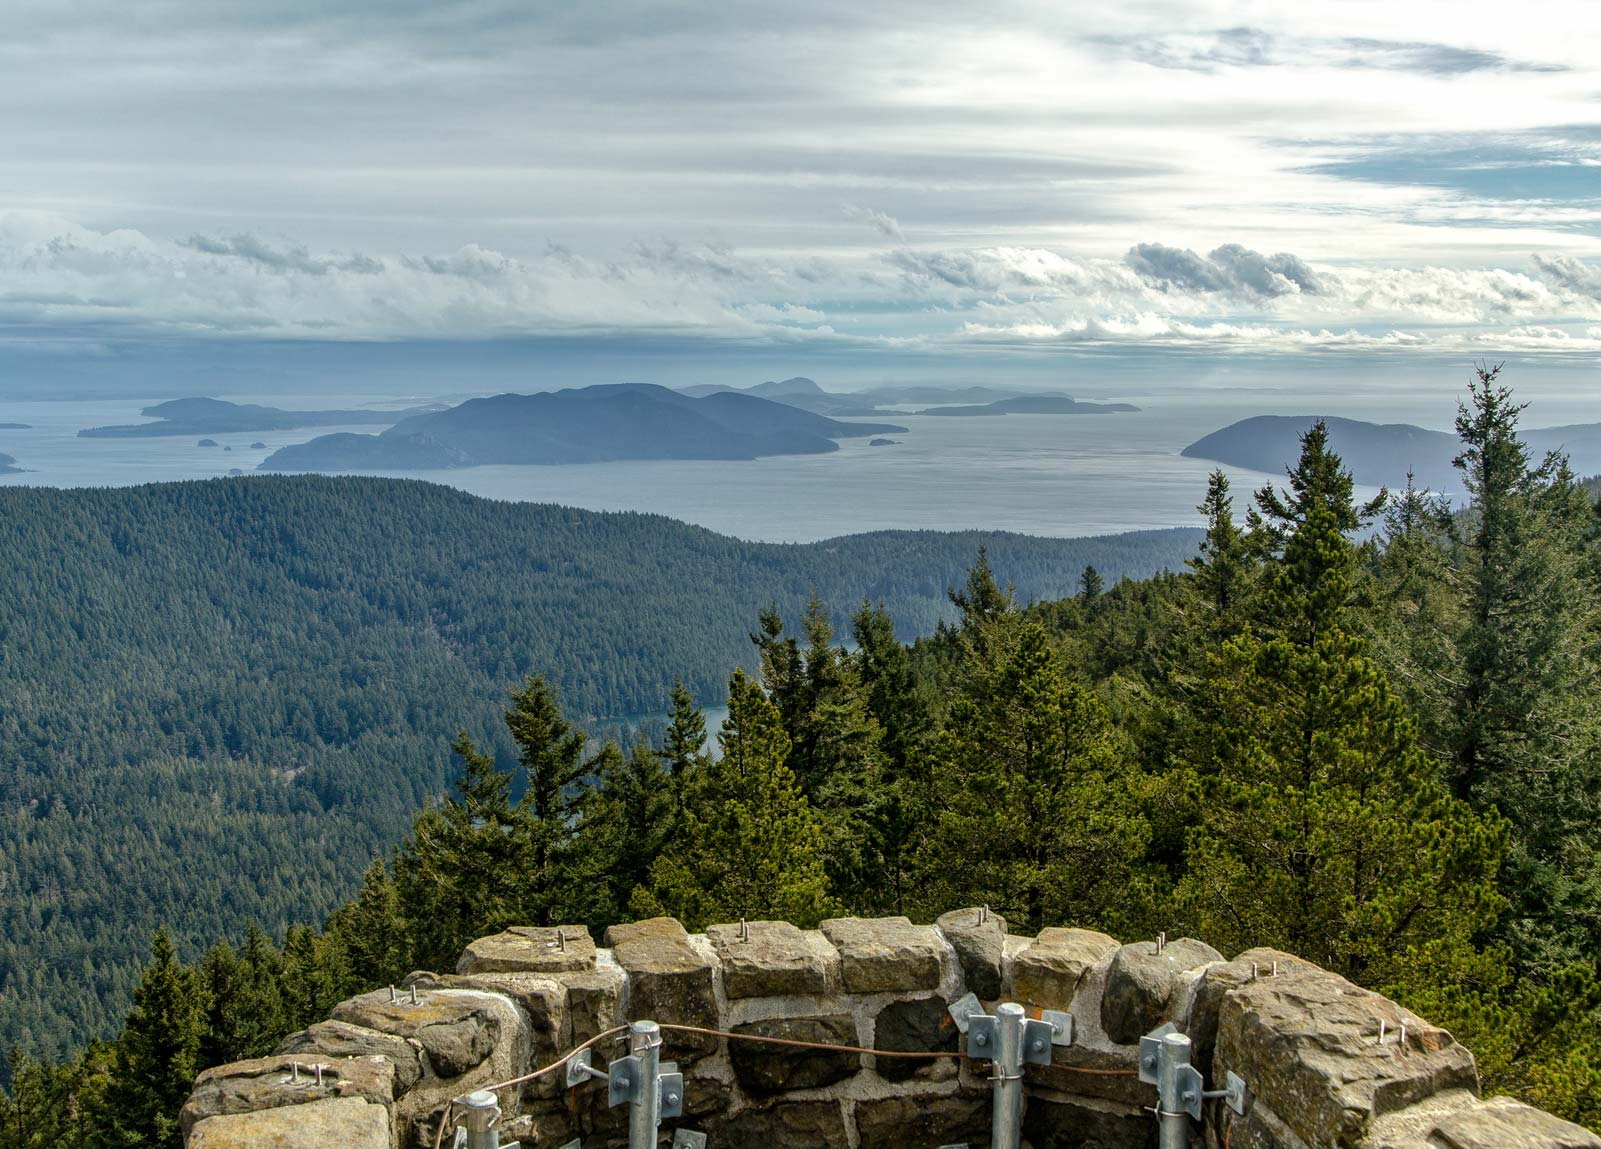 Moran State Park on Orcas Island